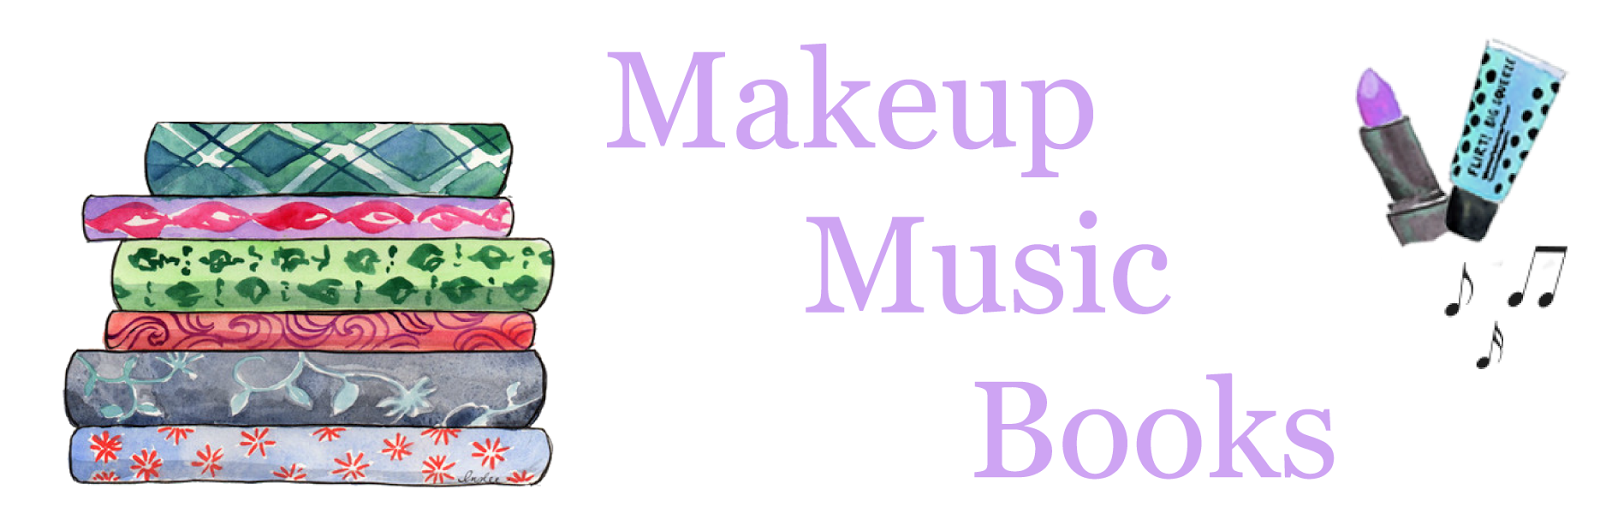 Makeup Music Books